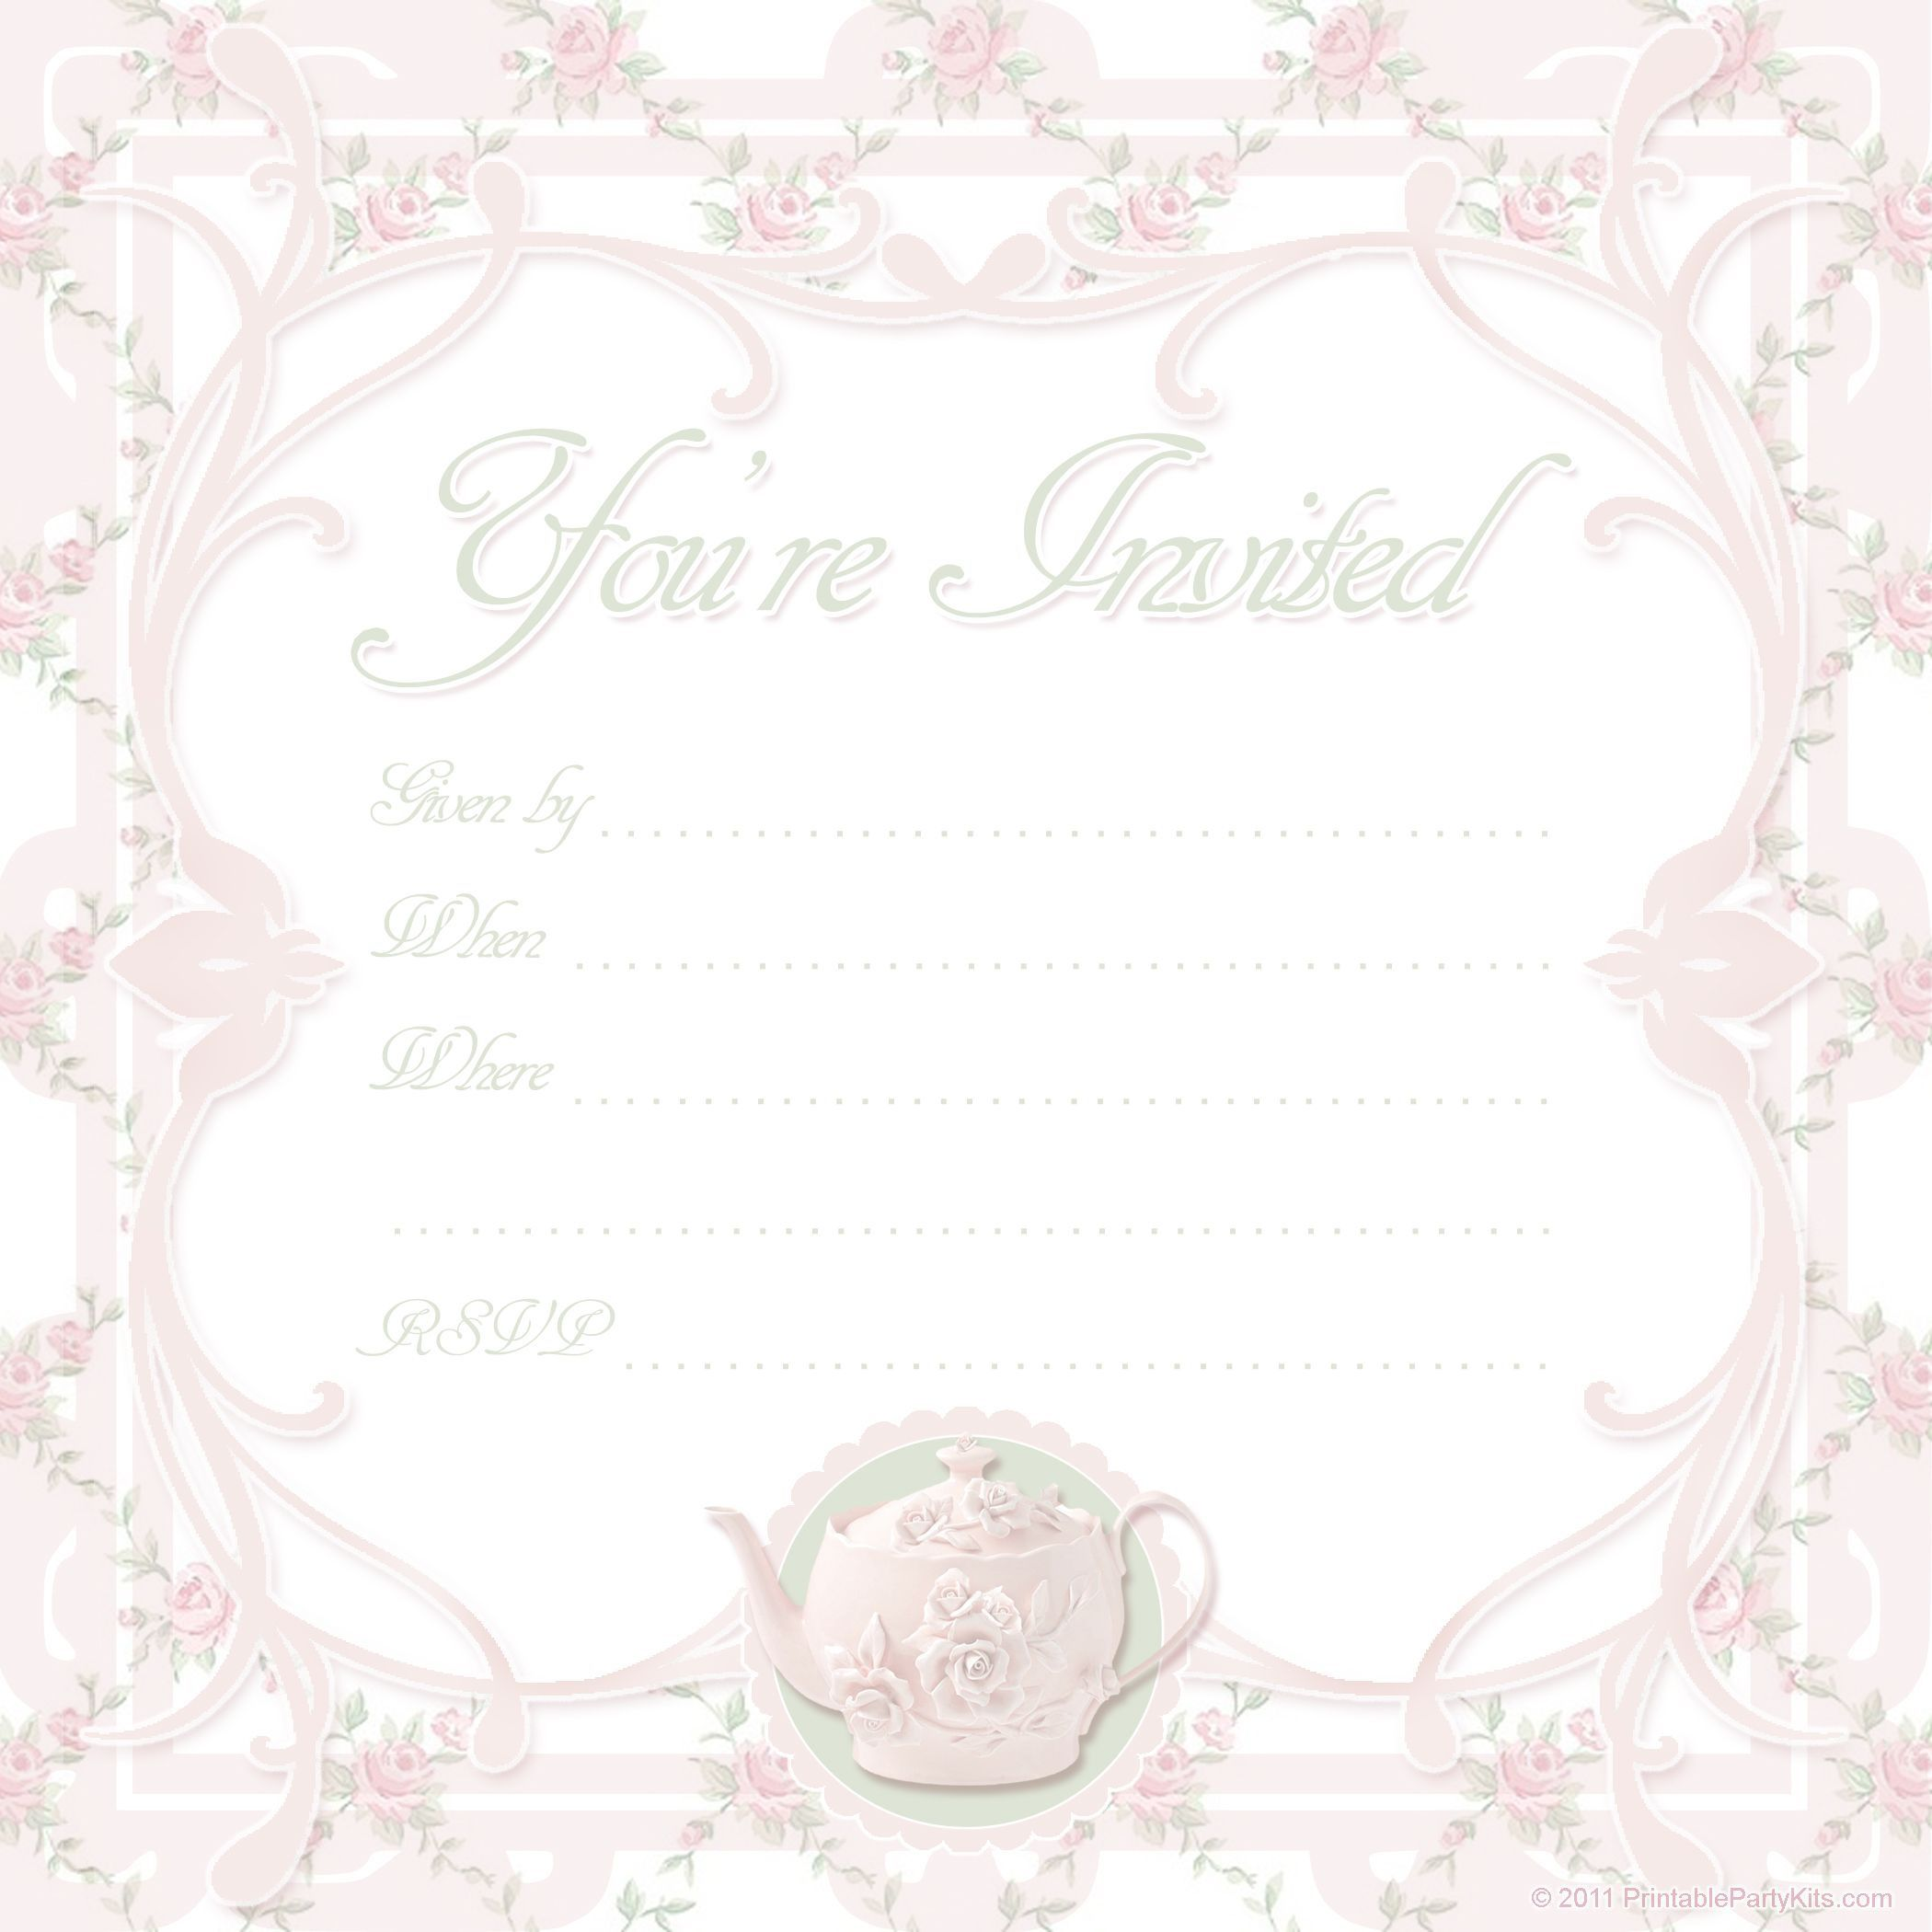 000 Awesome Tea Party Invitation Template High Def  Vintage Free Editable Card PdfFull